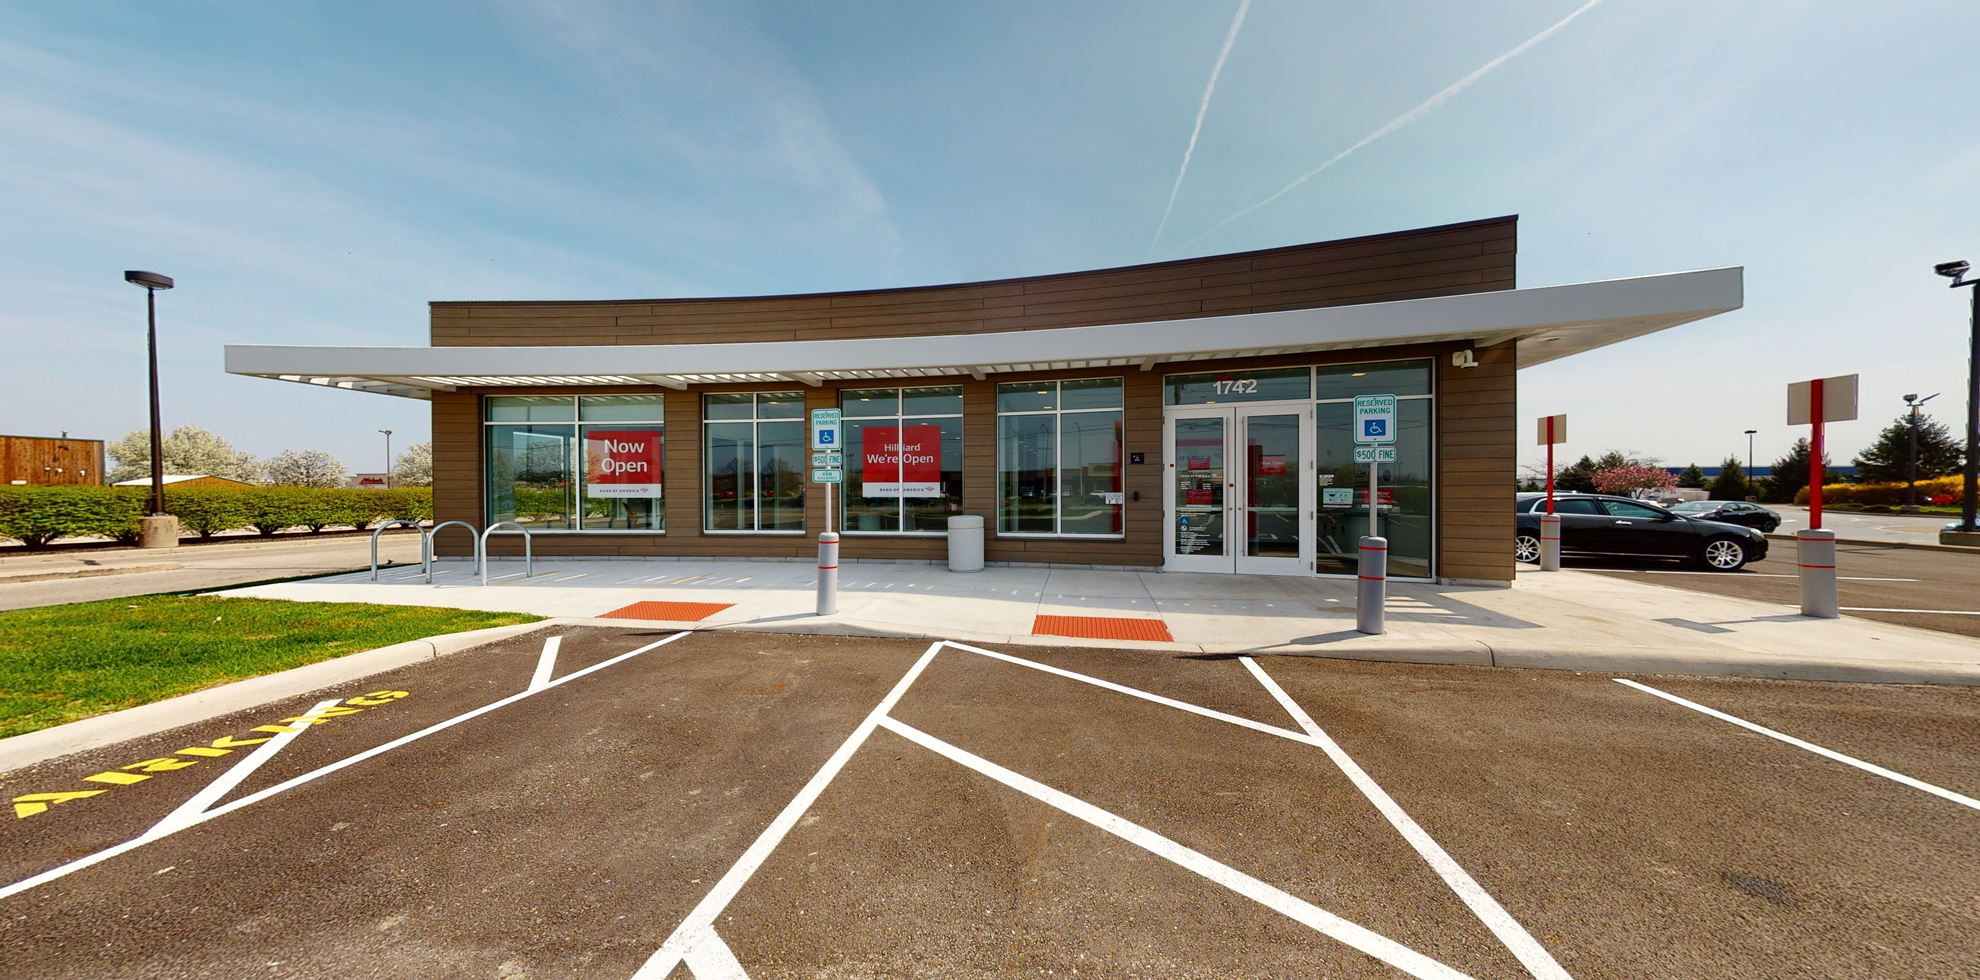 Bank of America financial center with drive-thru ATM   1742 Hilliard and Rome Rd, Hilliard, OH 43026